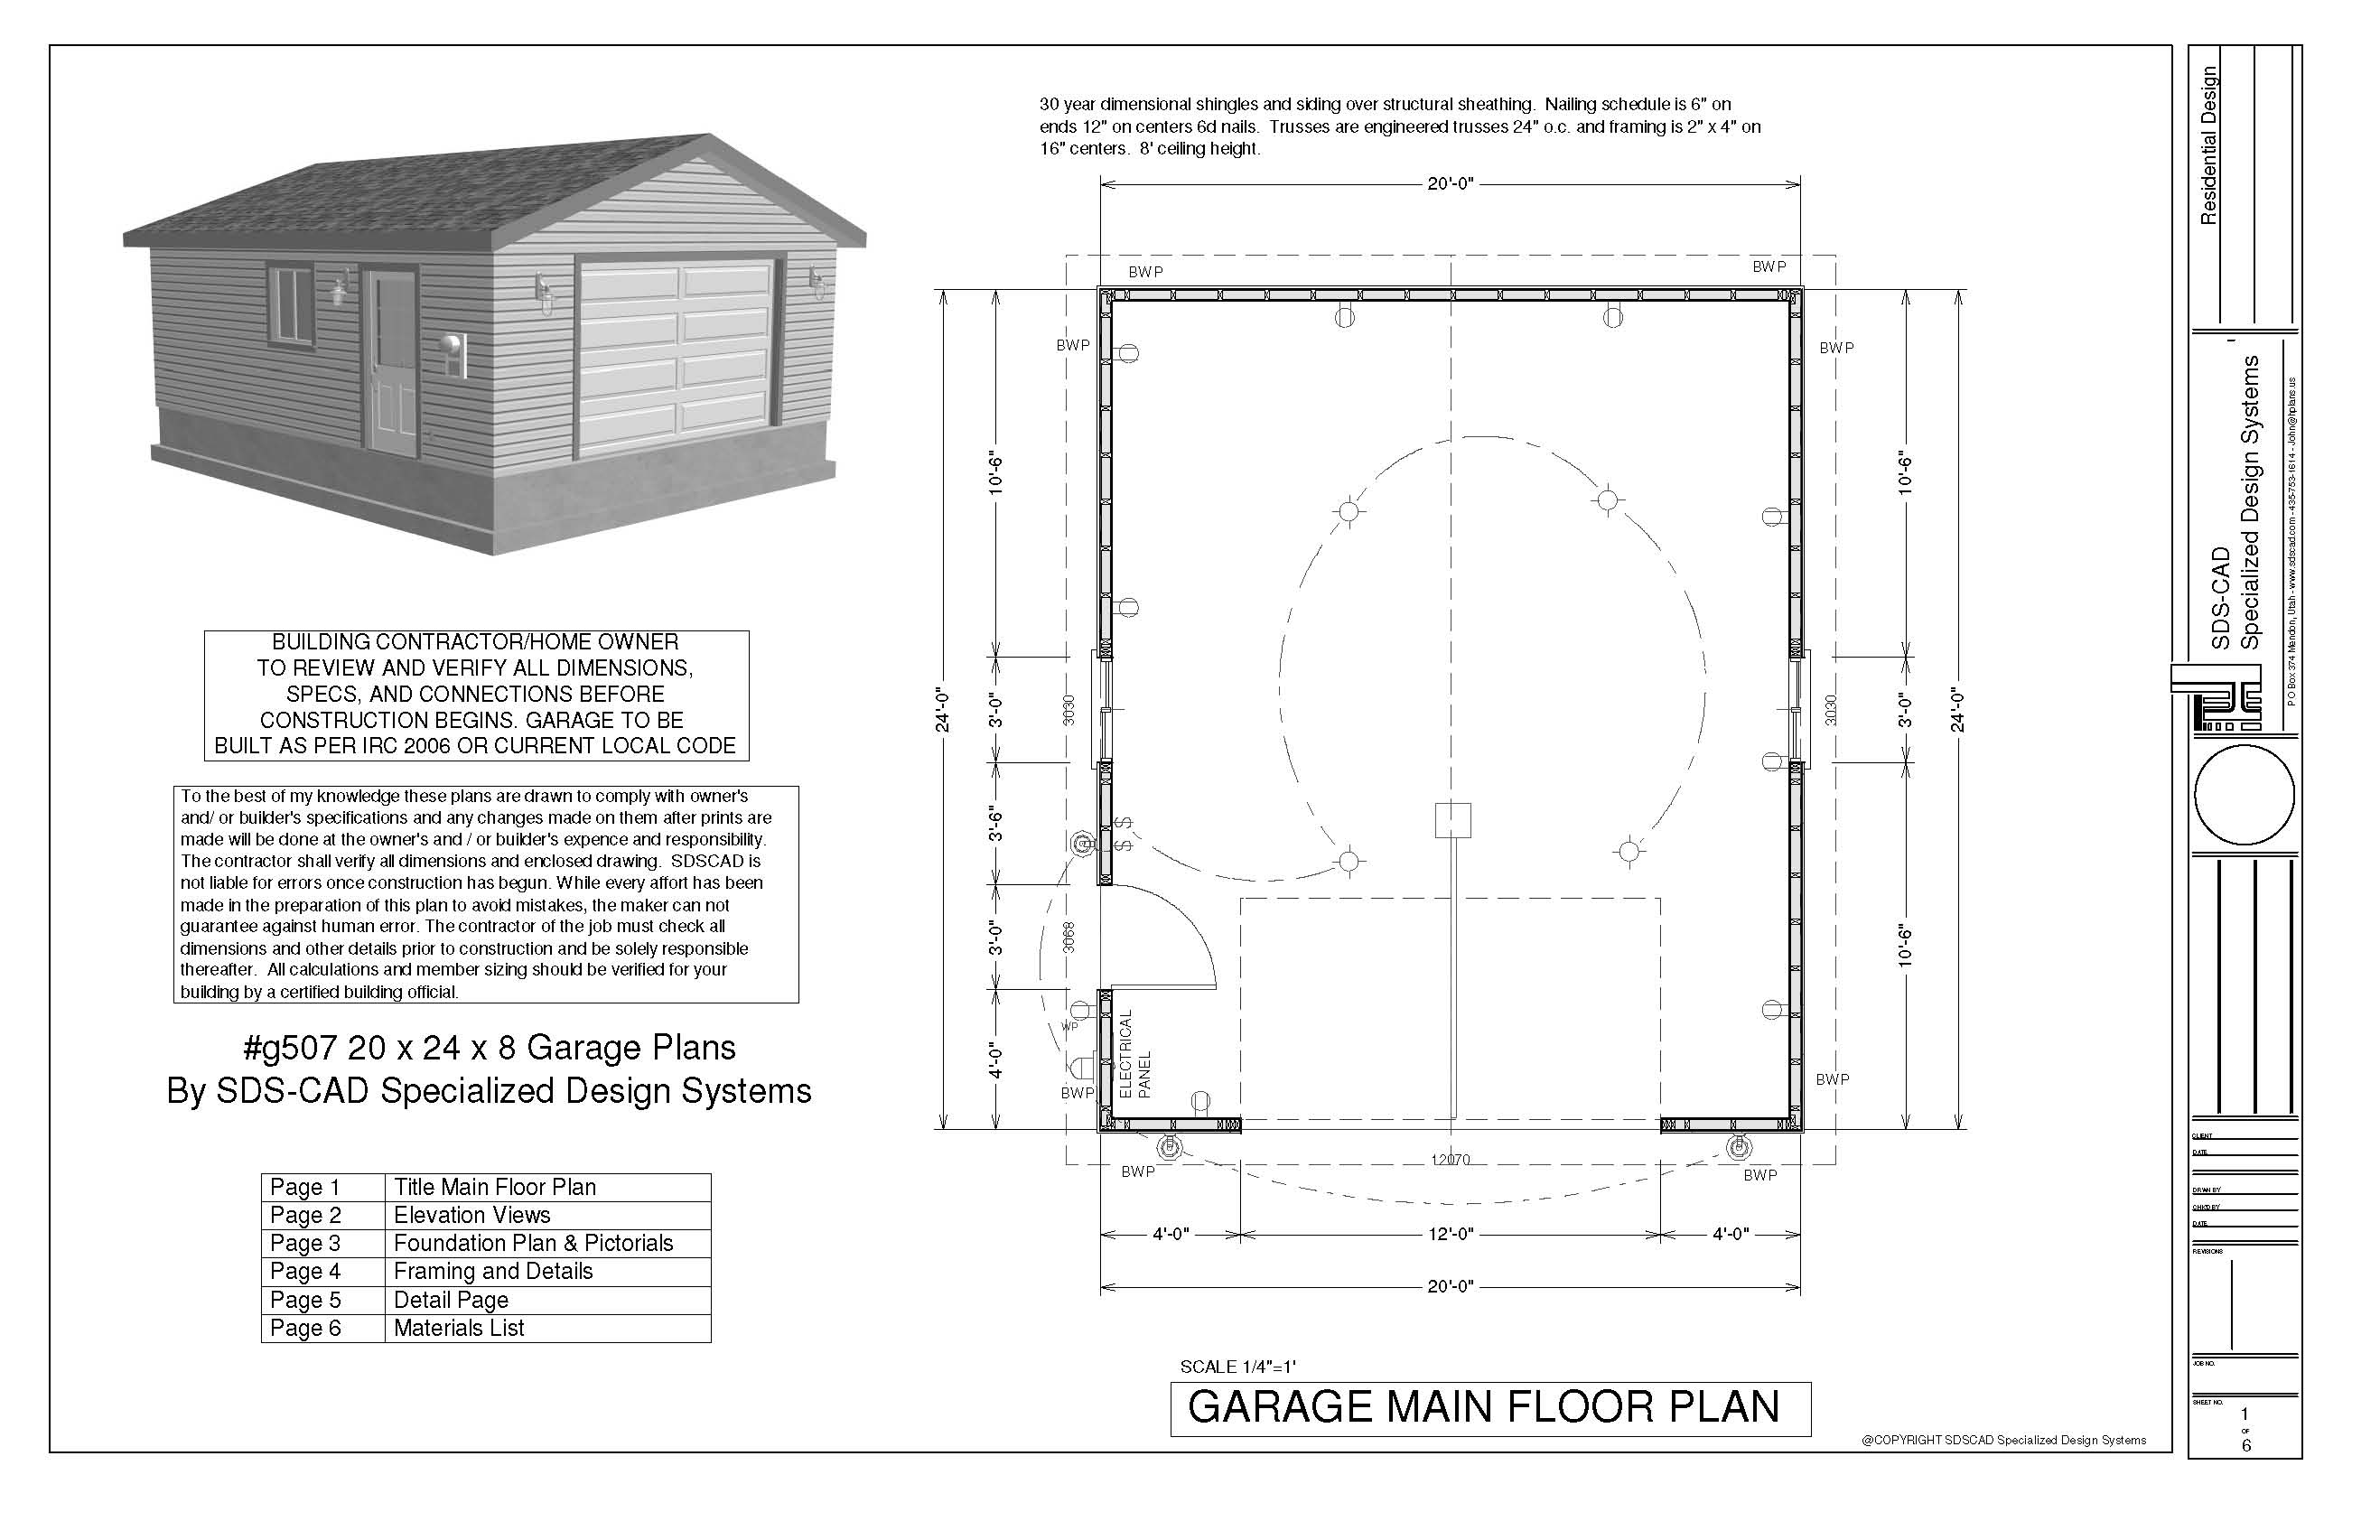 Download Garage Plans Sds Plans